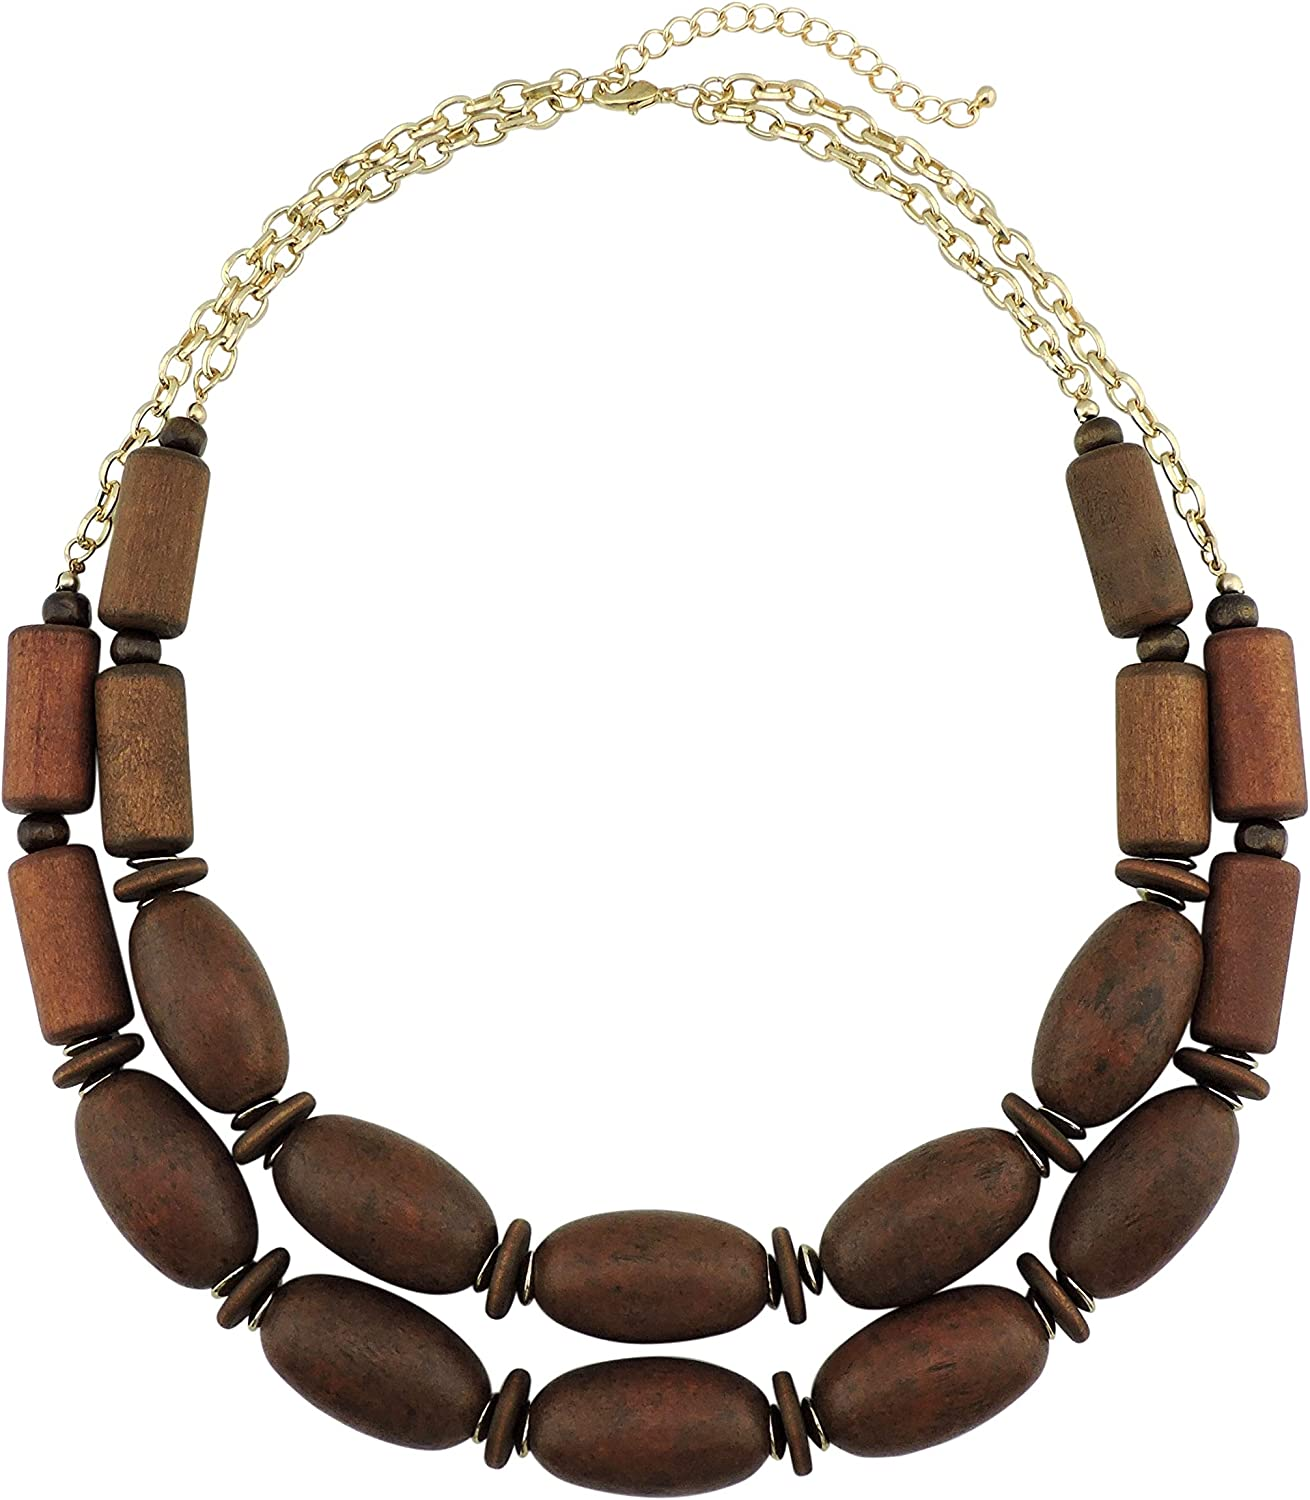 BOCAR 2 Layer Statement Chunky Beaded Collar wholesale Neckla Wood Now on sale Fashion